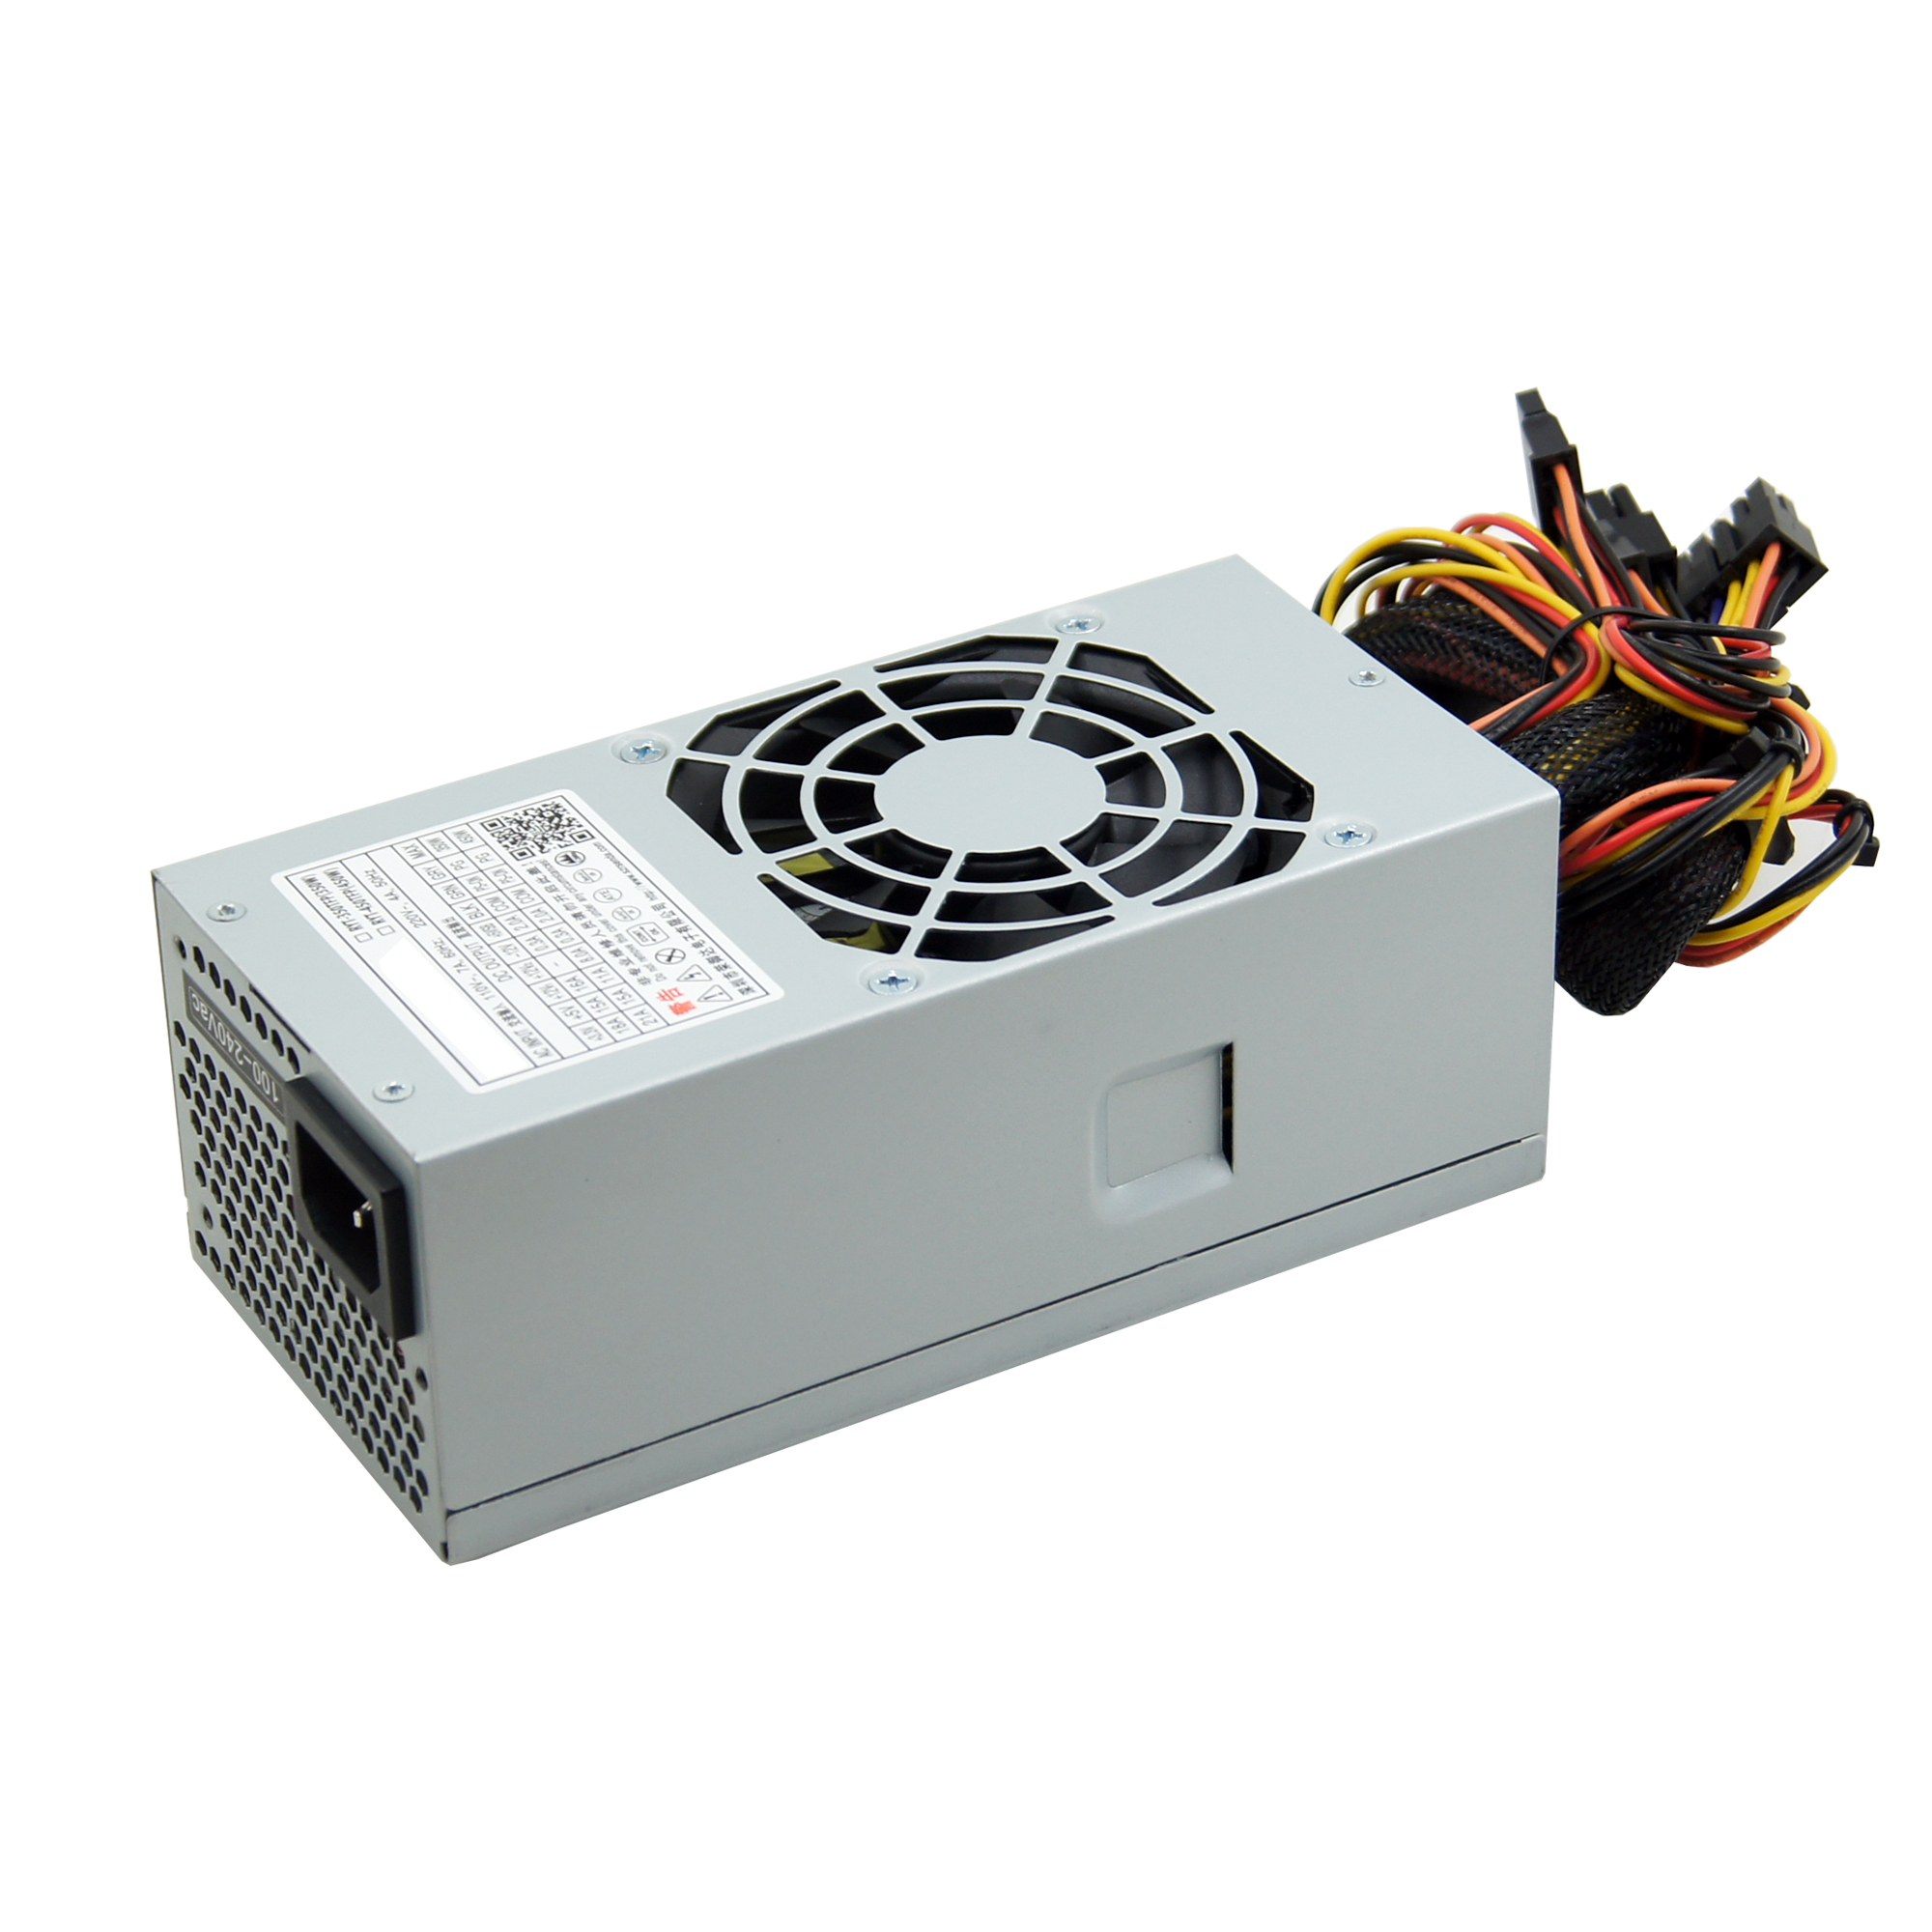 SFX TFX psu computer atx  power supply 300w for mini pc used server computer